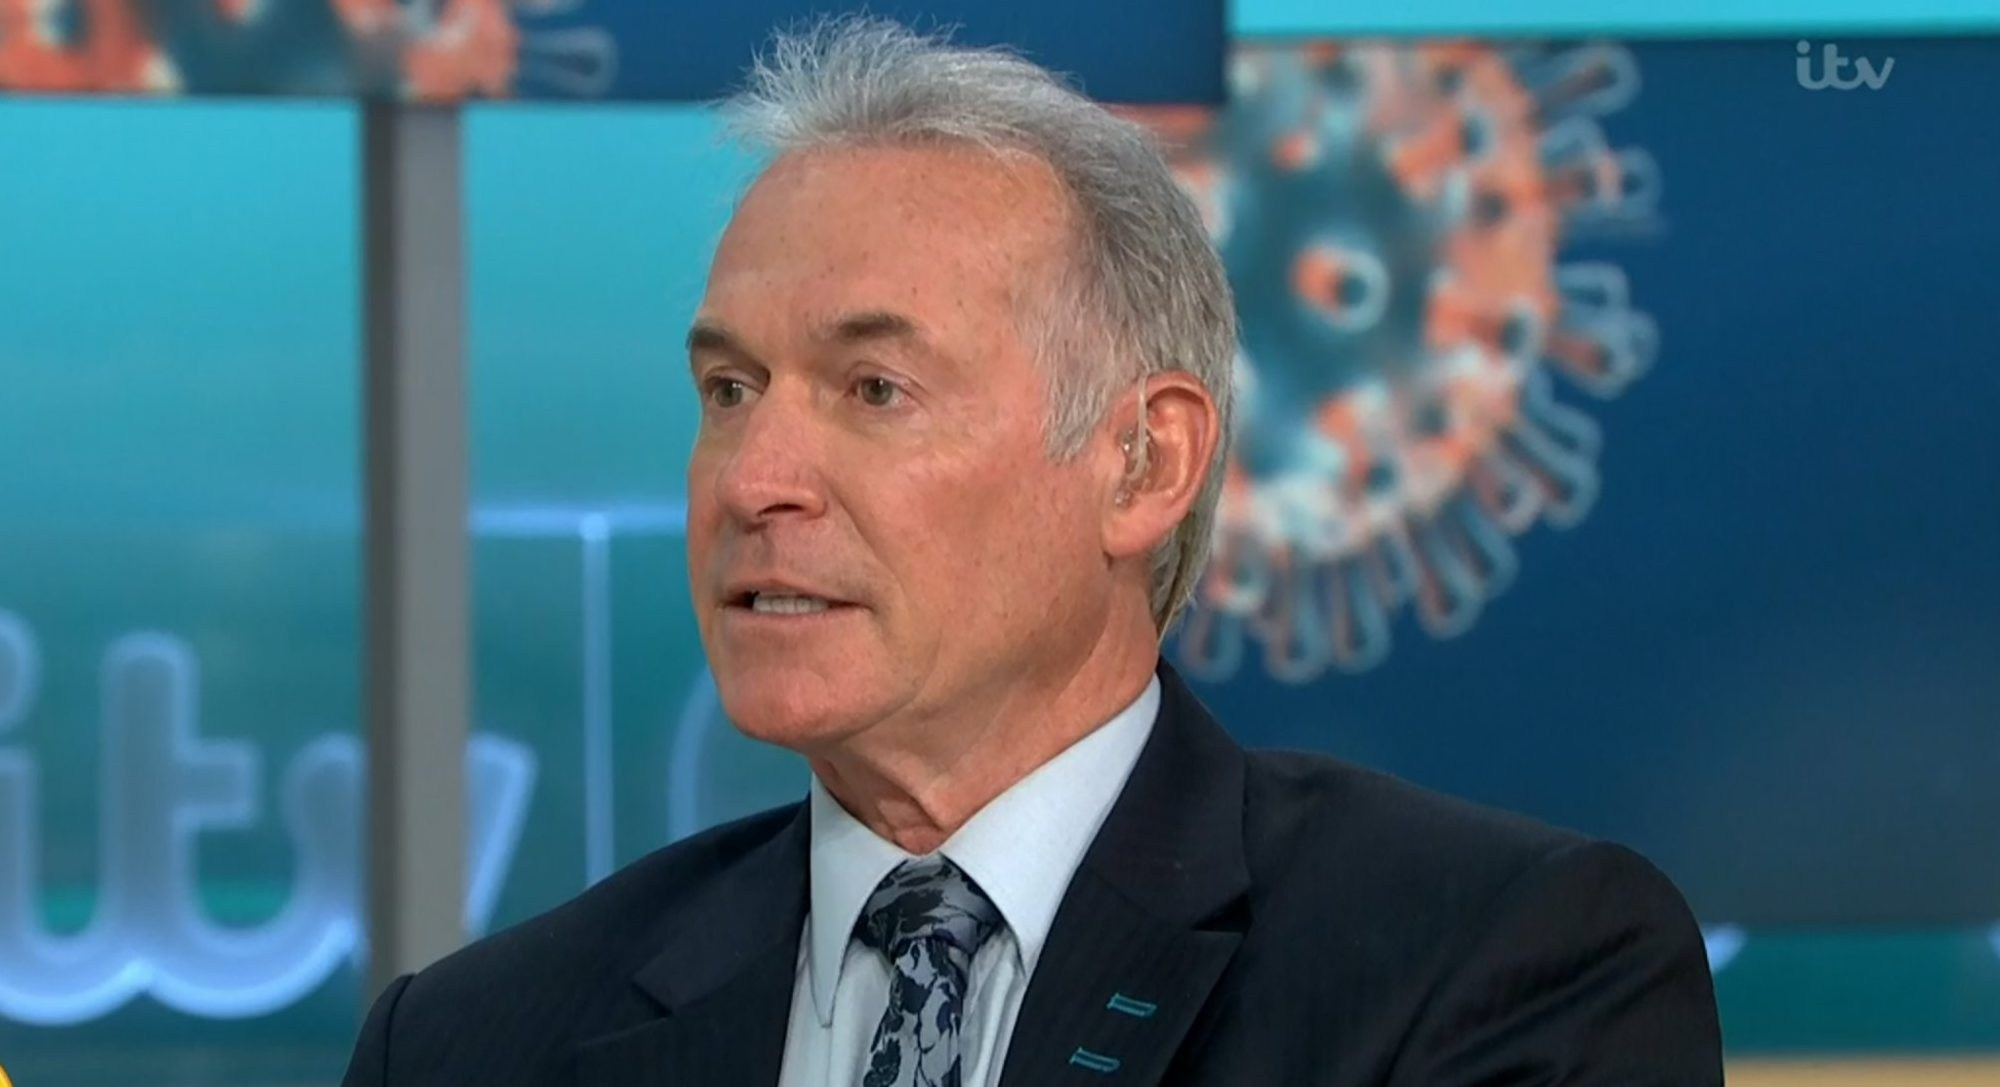 Dr Hilary Jones warns 'we are in big trouble' if we relax view of coronavirus